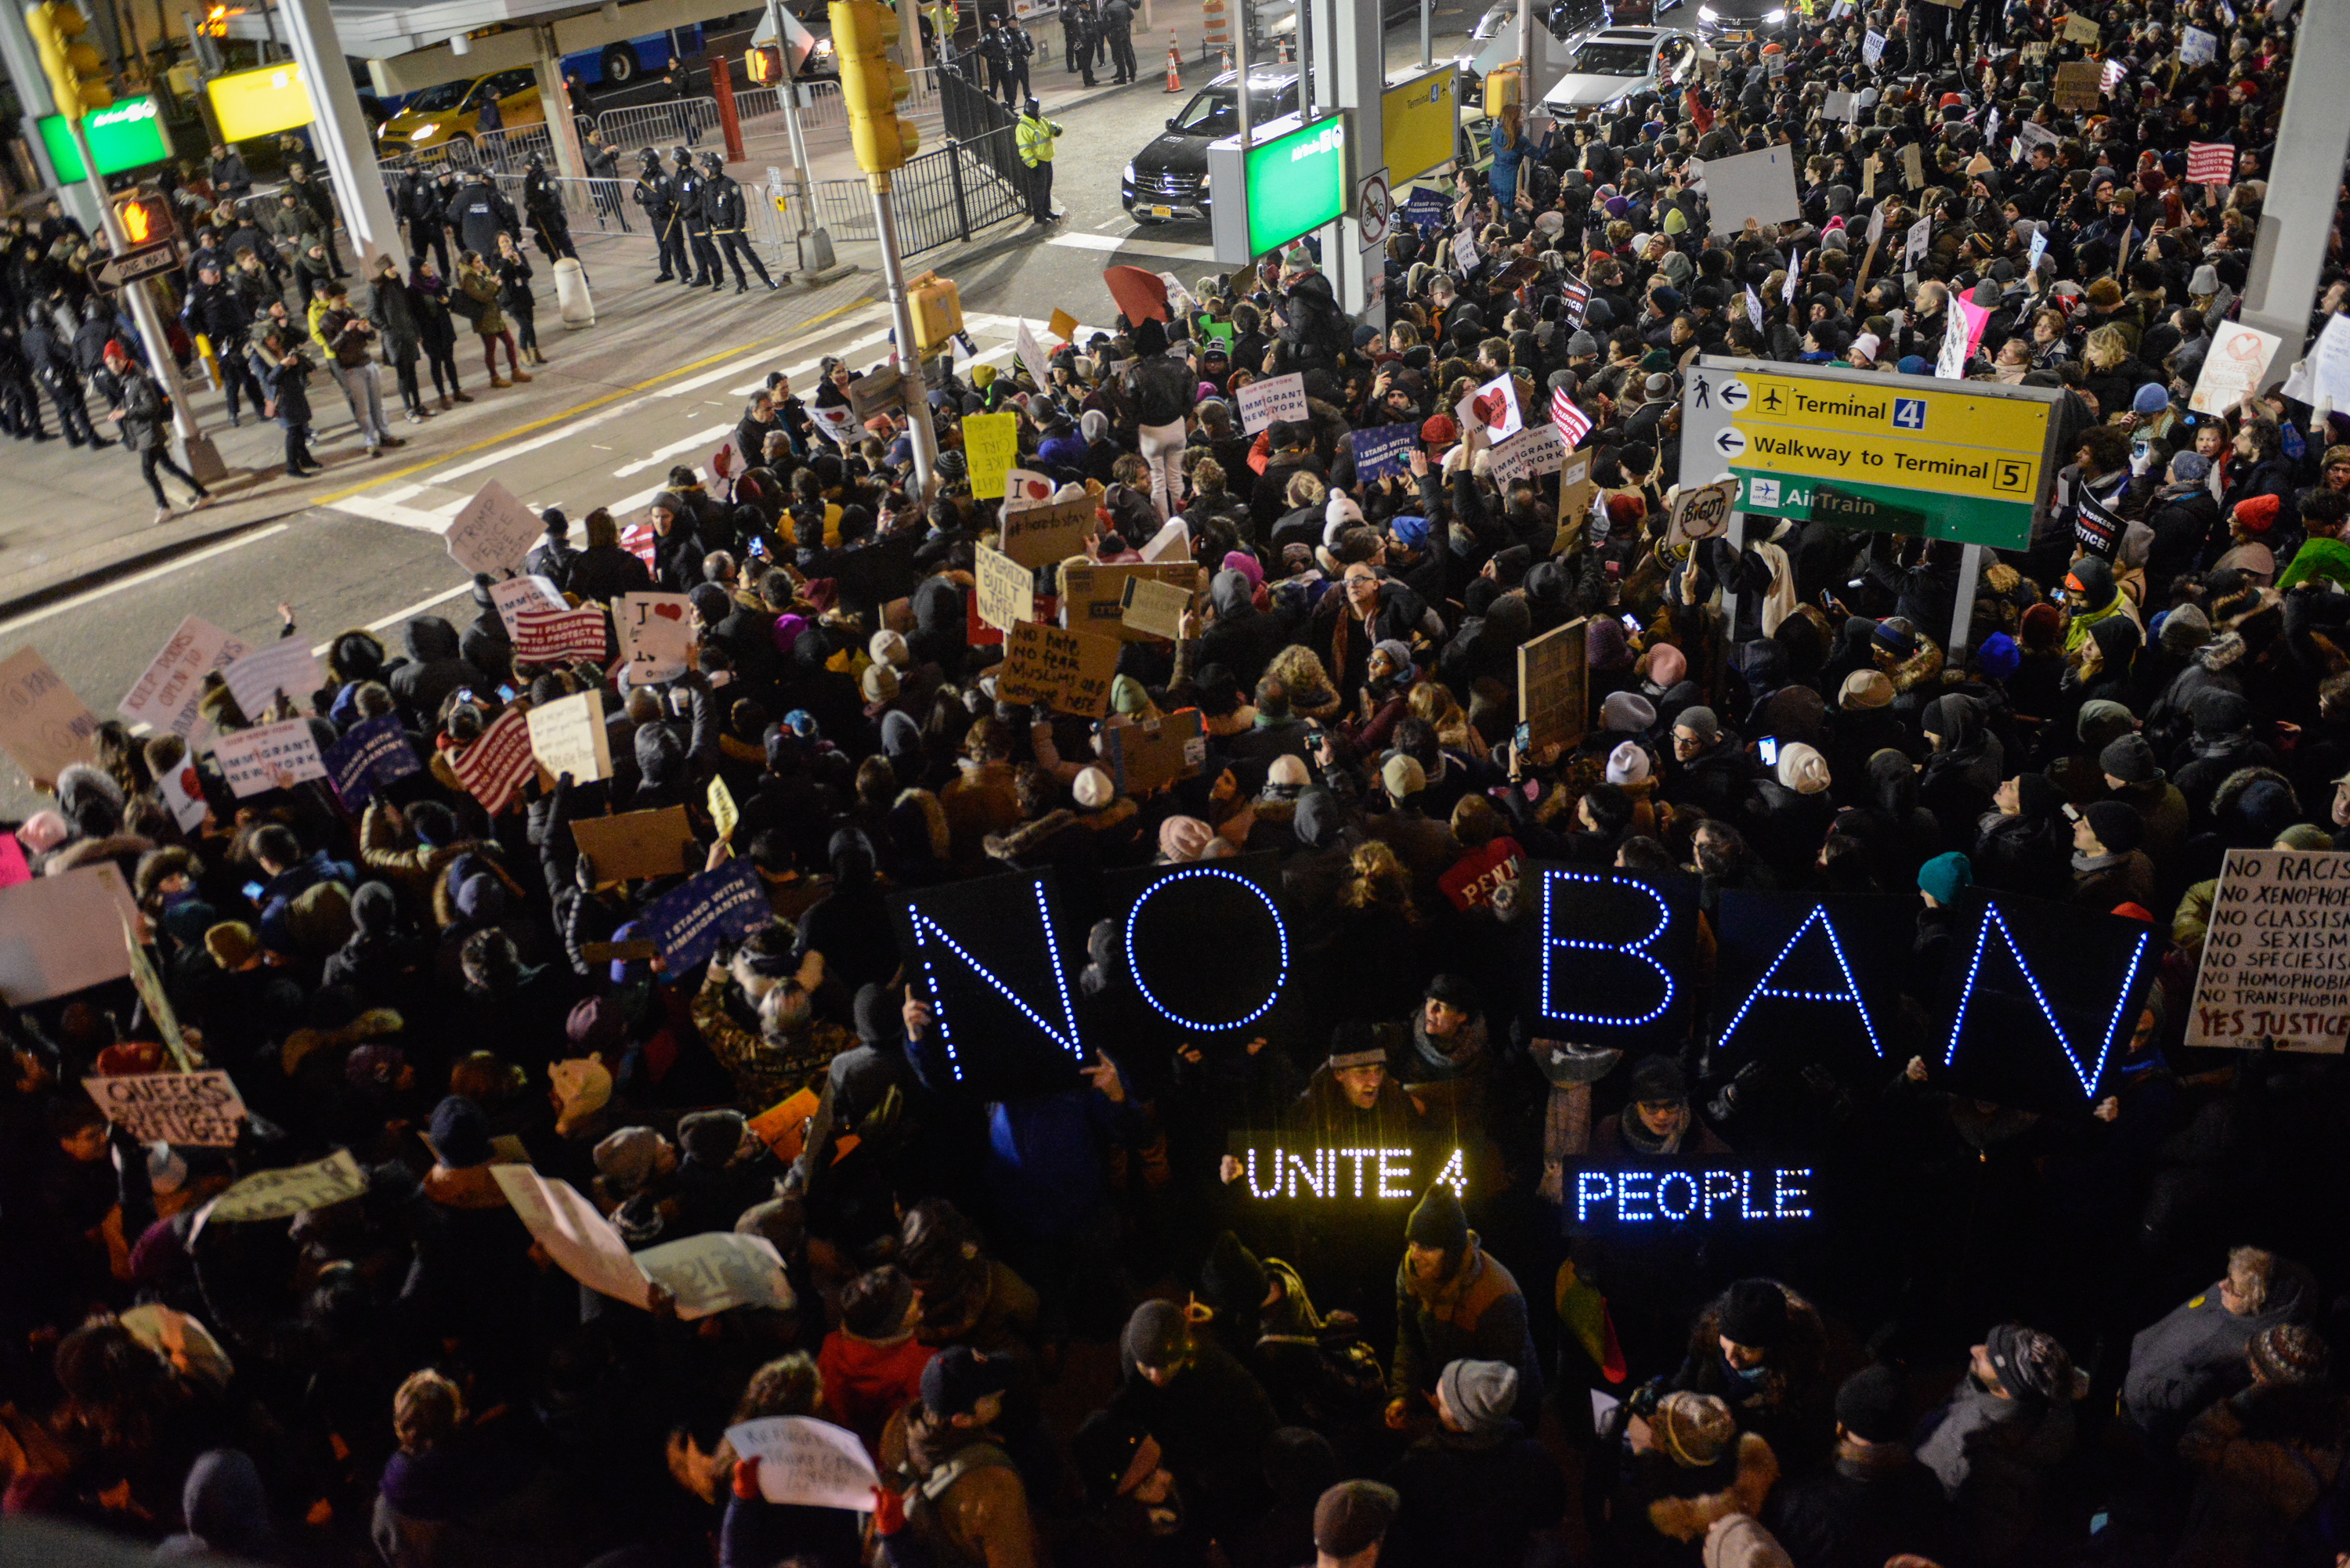 Protestors rally  during a demonstration against the immigration ban at John F. Kennedy International Airport on January 28, 2017 in New York City.